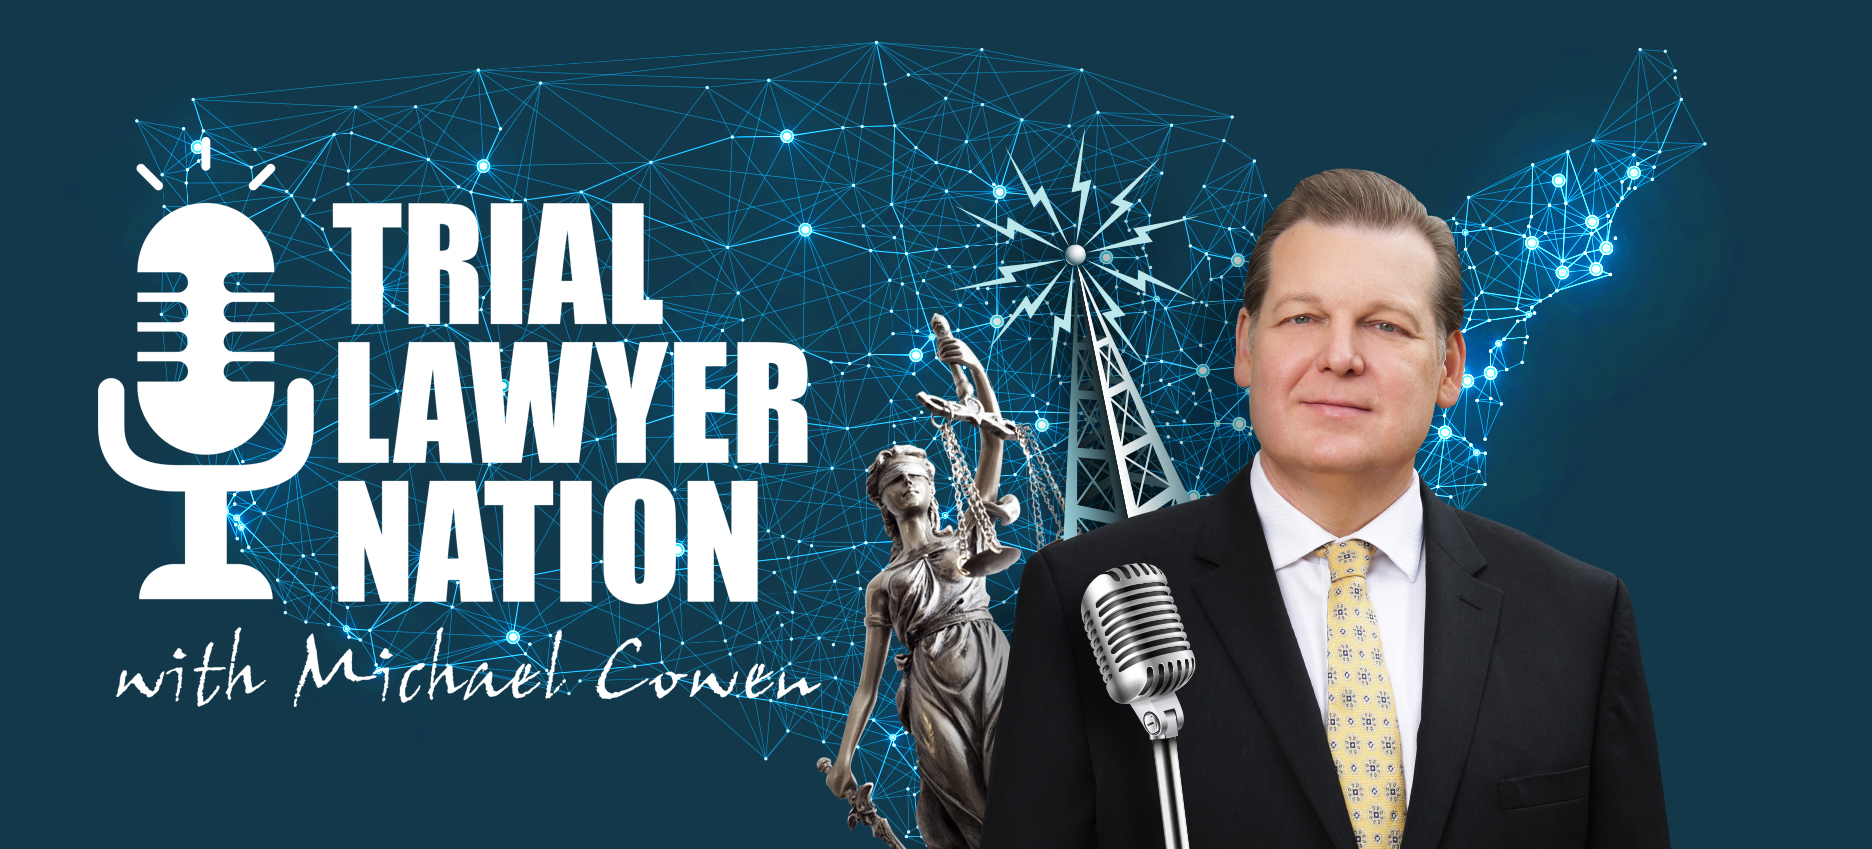 Trial-Lawyer-Nation-FBheader